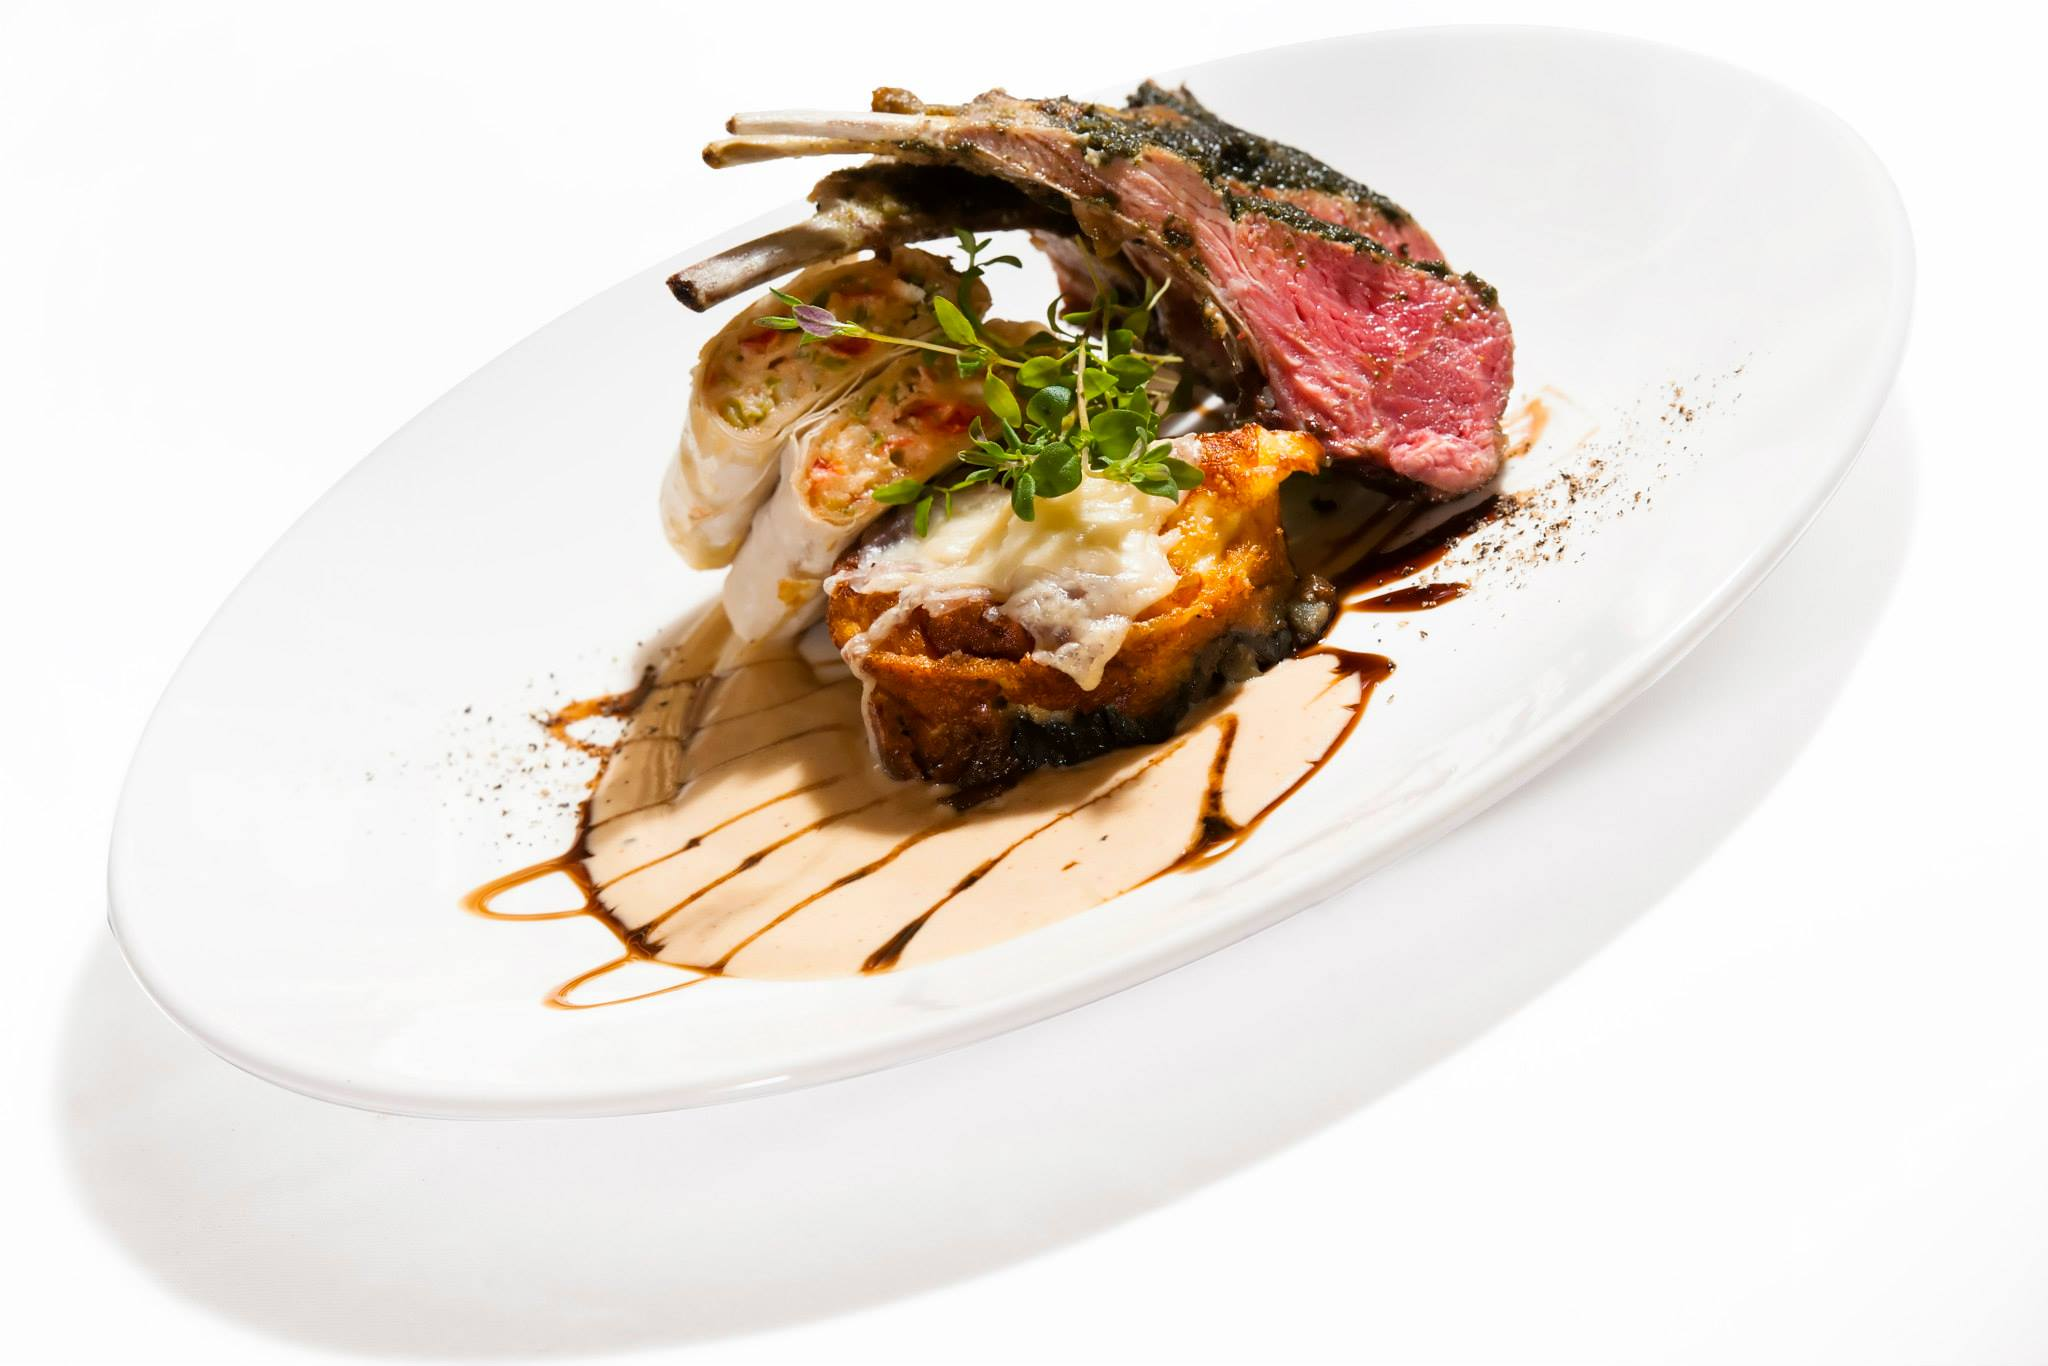 Roast lamb cutlets with mint pesto, vegetable lasagna with goat cheese strudel and calvados sauce